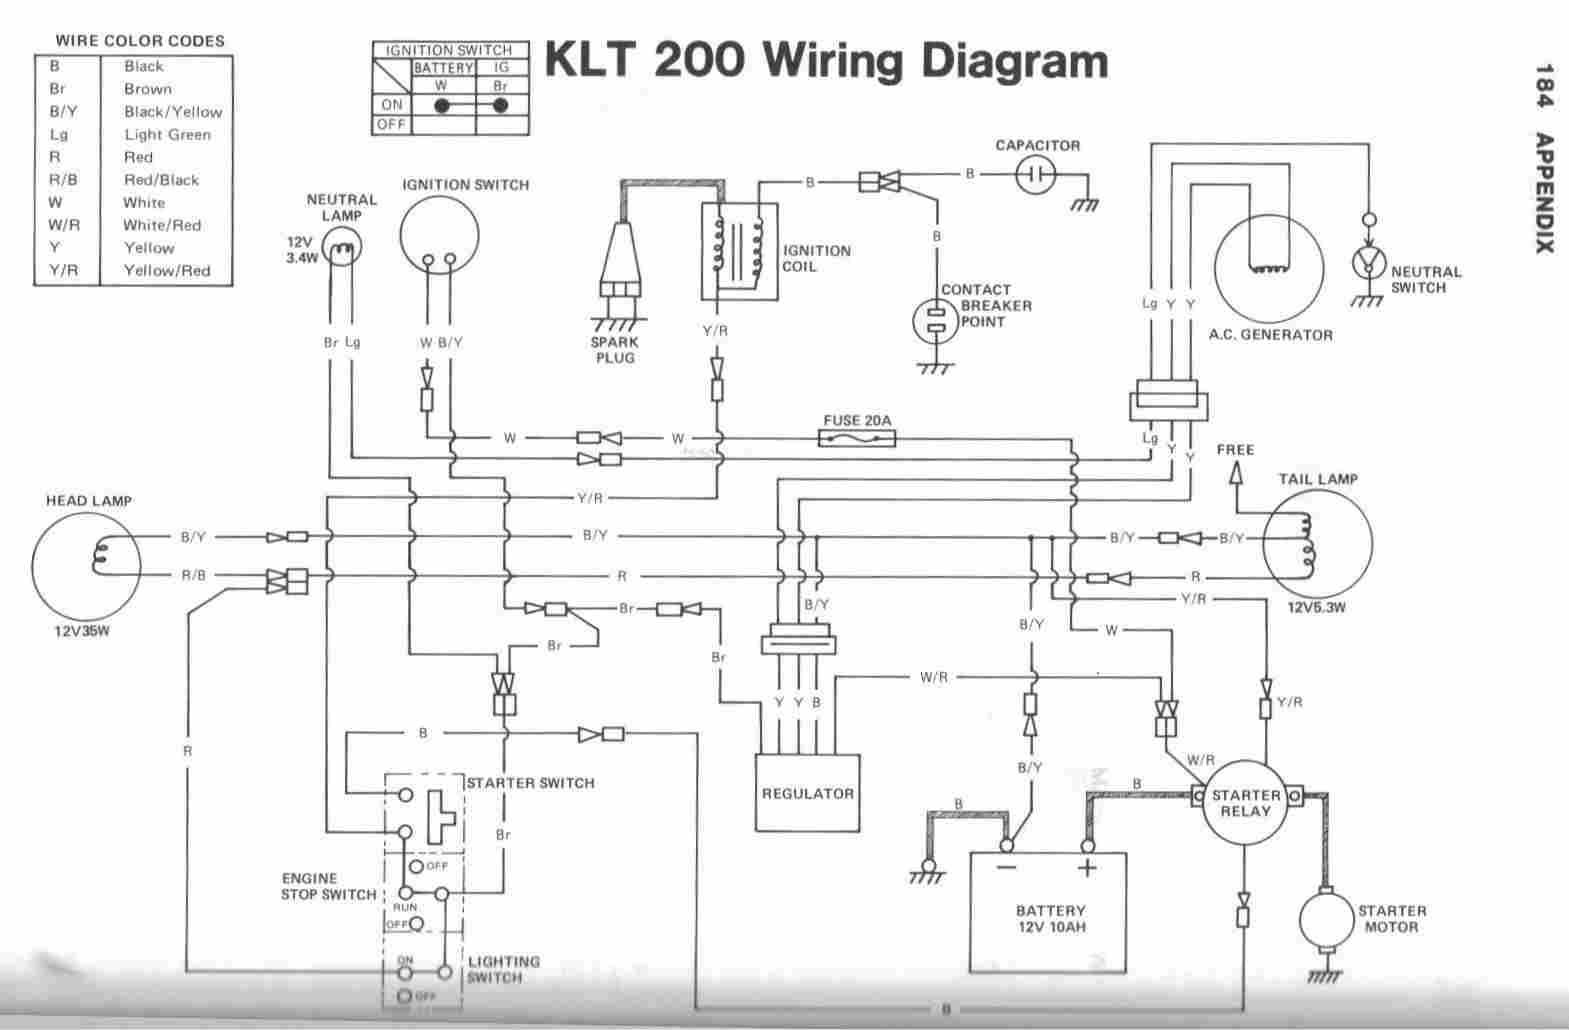 2869034594ce054a636782e5c44b61b4 residential electrical wiring diagrams pdf easy routing cool electrical wiring diagrams at creativeand.co